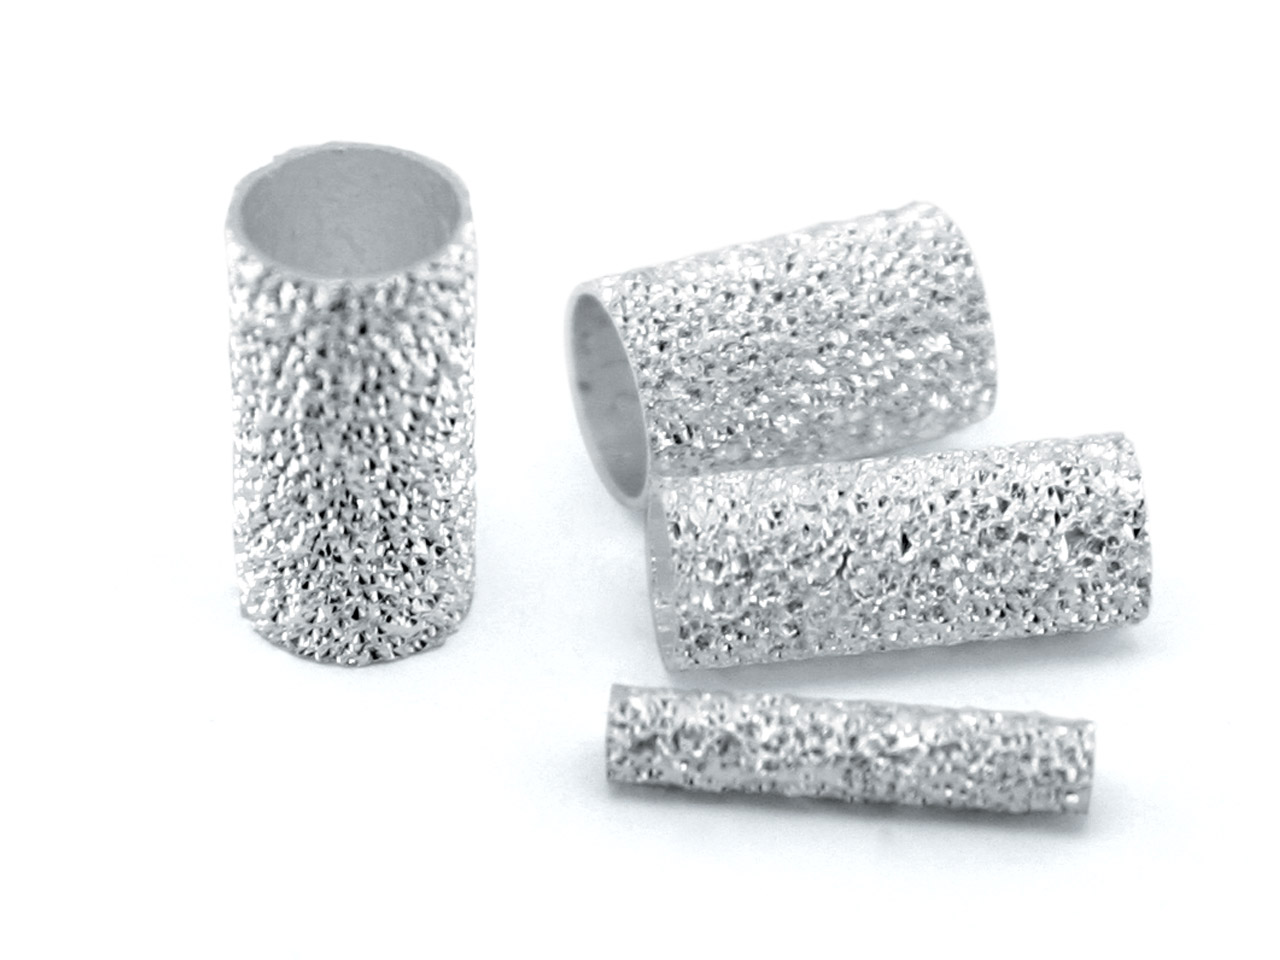 Sterling Silver Tube Bead,         Pack of 25 10x2mm, Frosted Finish, Hole Diameter 1.5mm